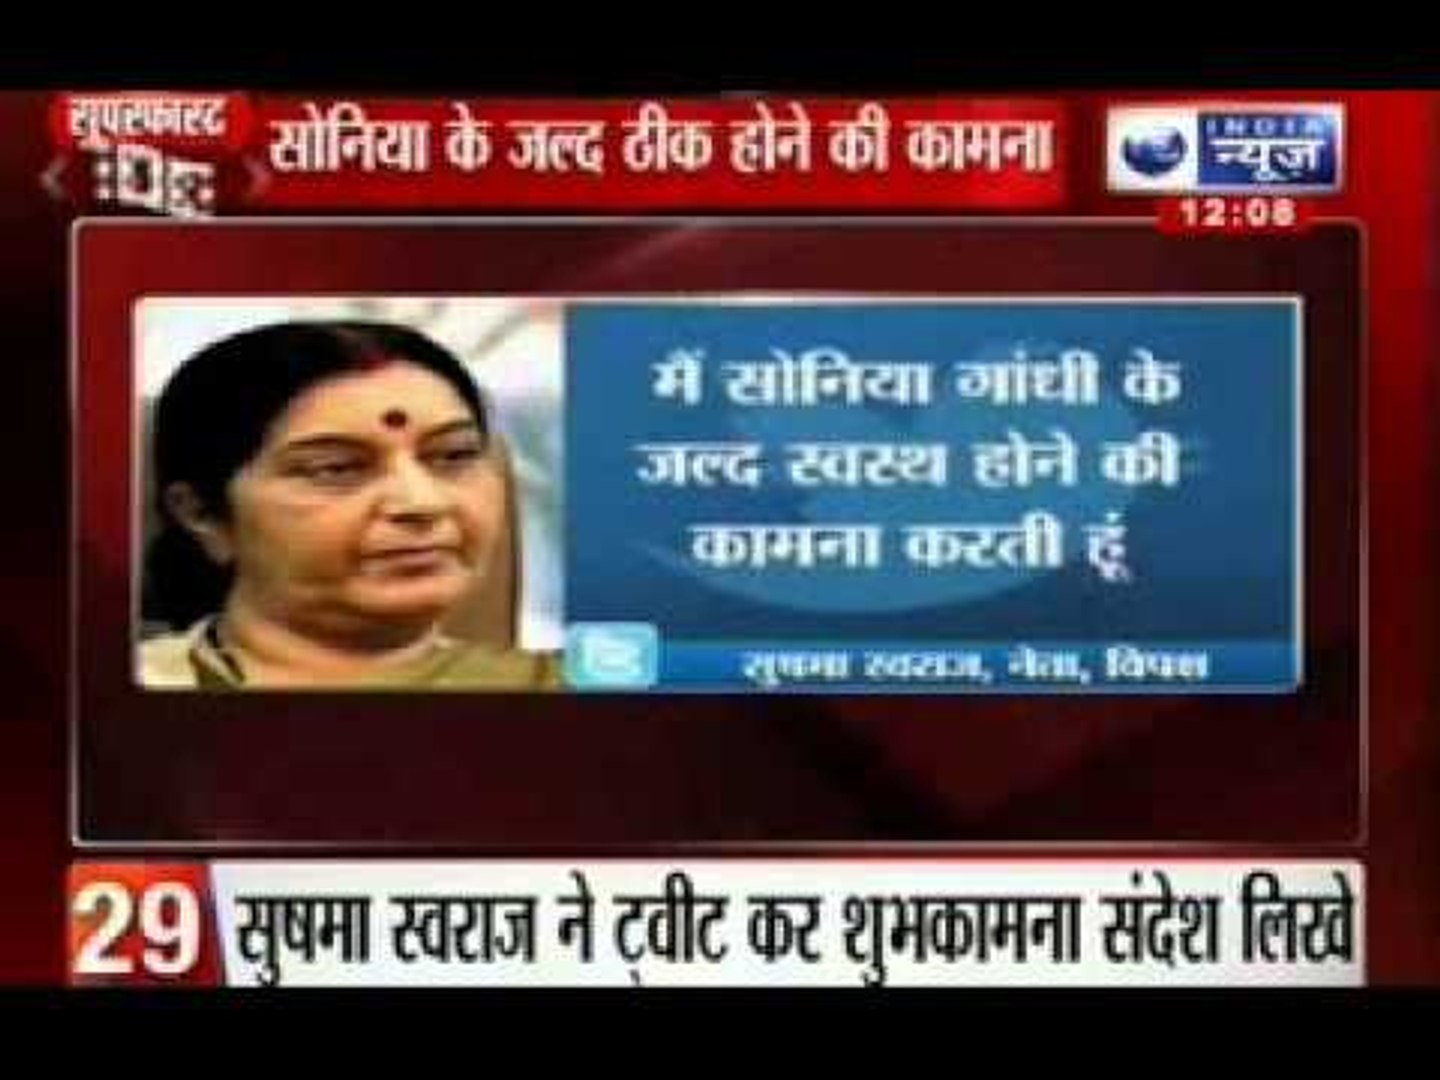 India News : Super Fast 100 News on 27th August